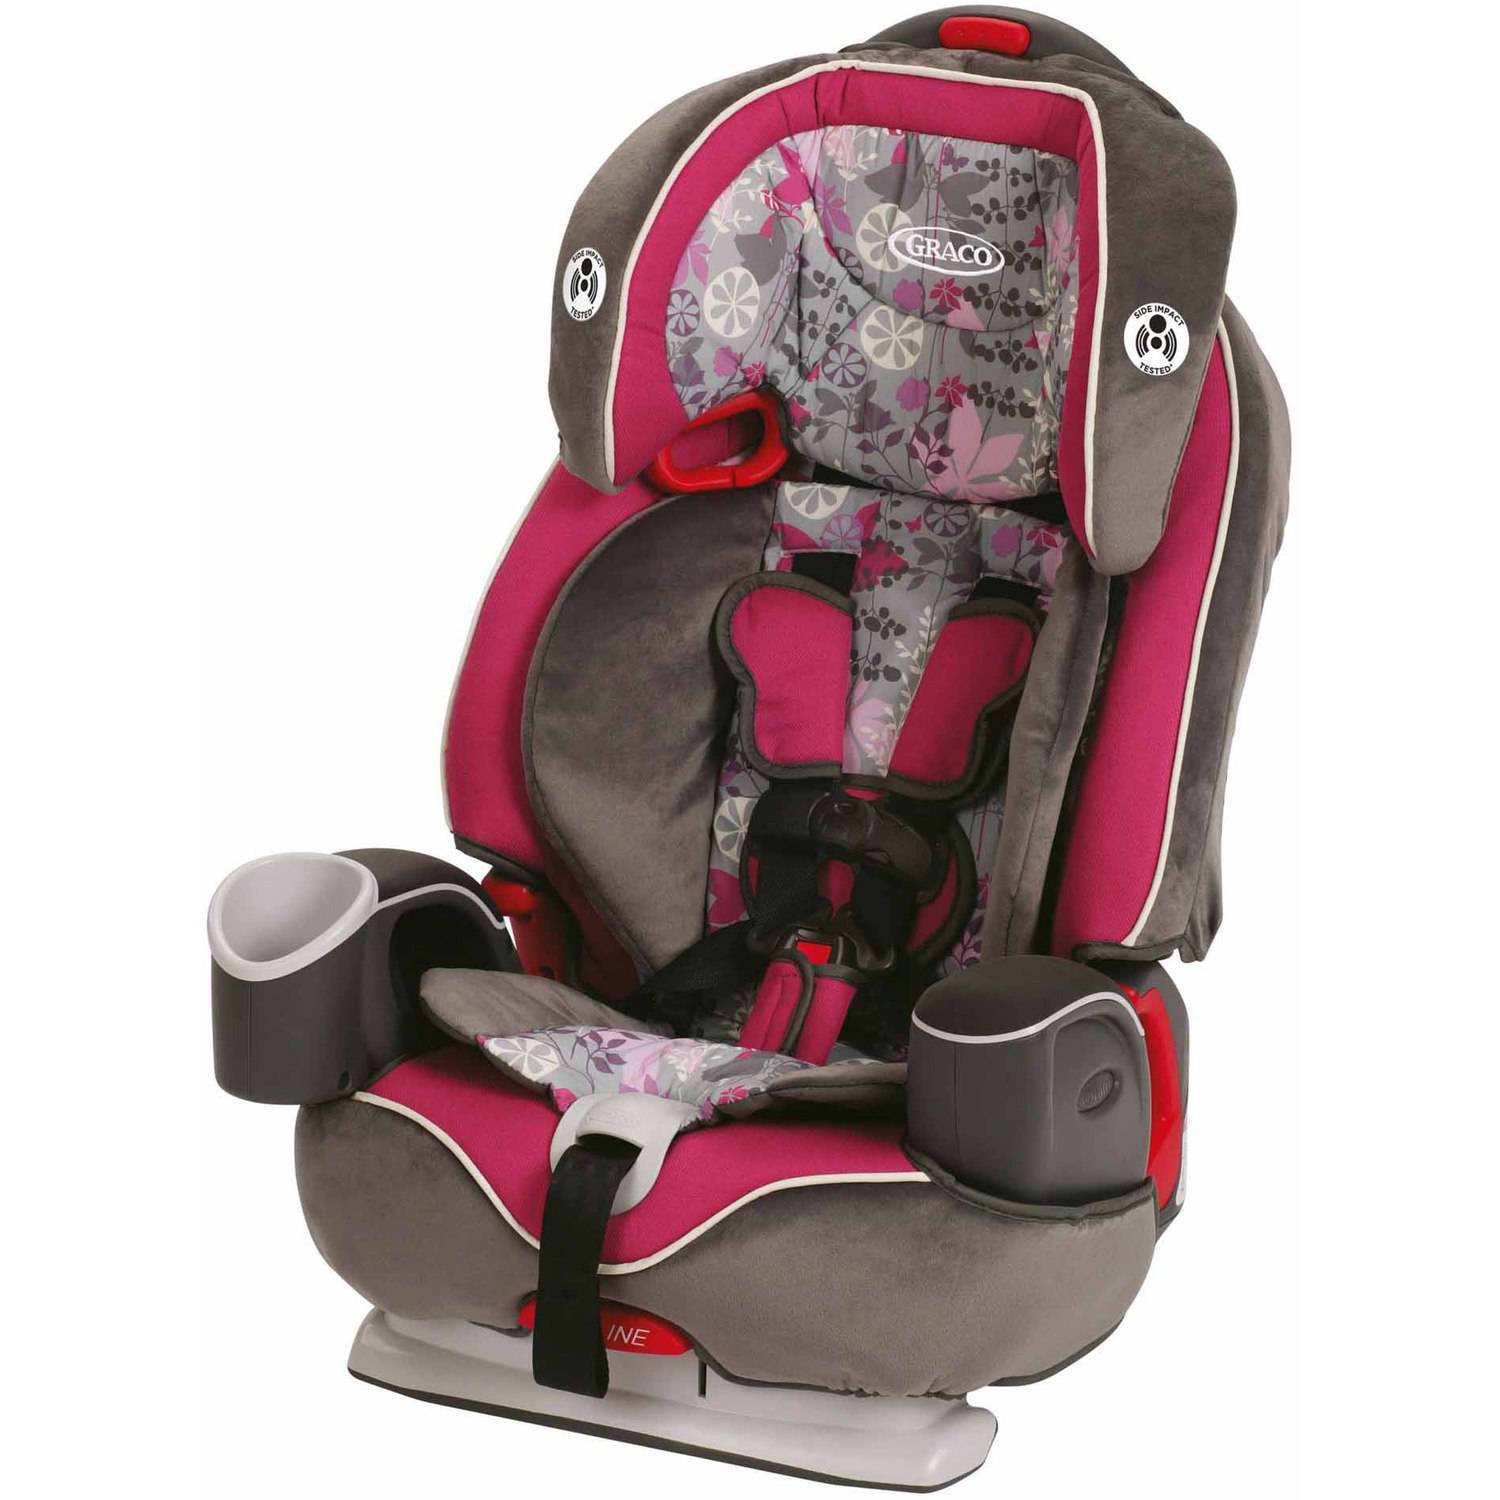 Graco Nautilus 3 In 1 Harness Booster Car Seat Bethany